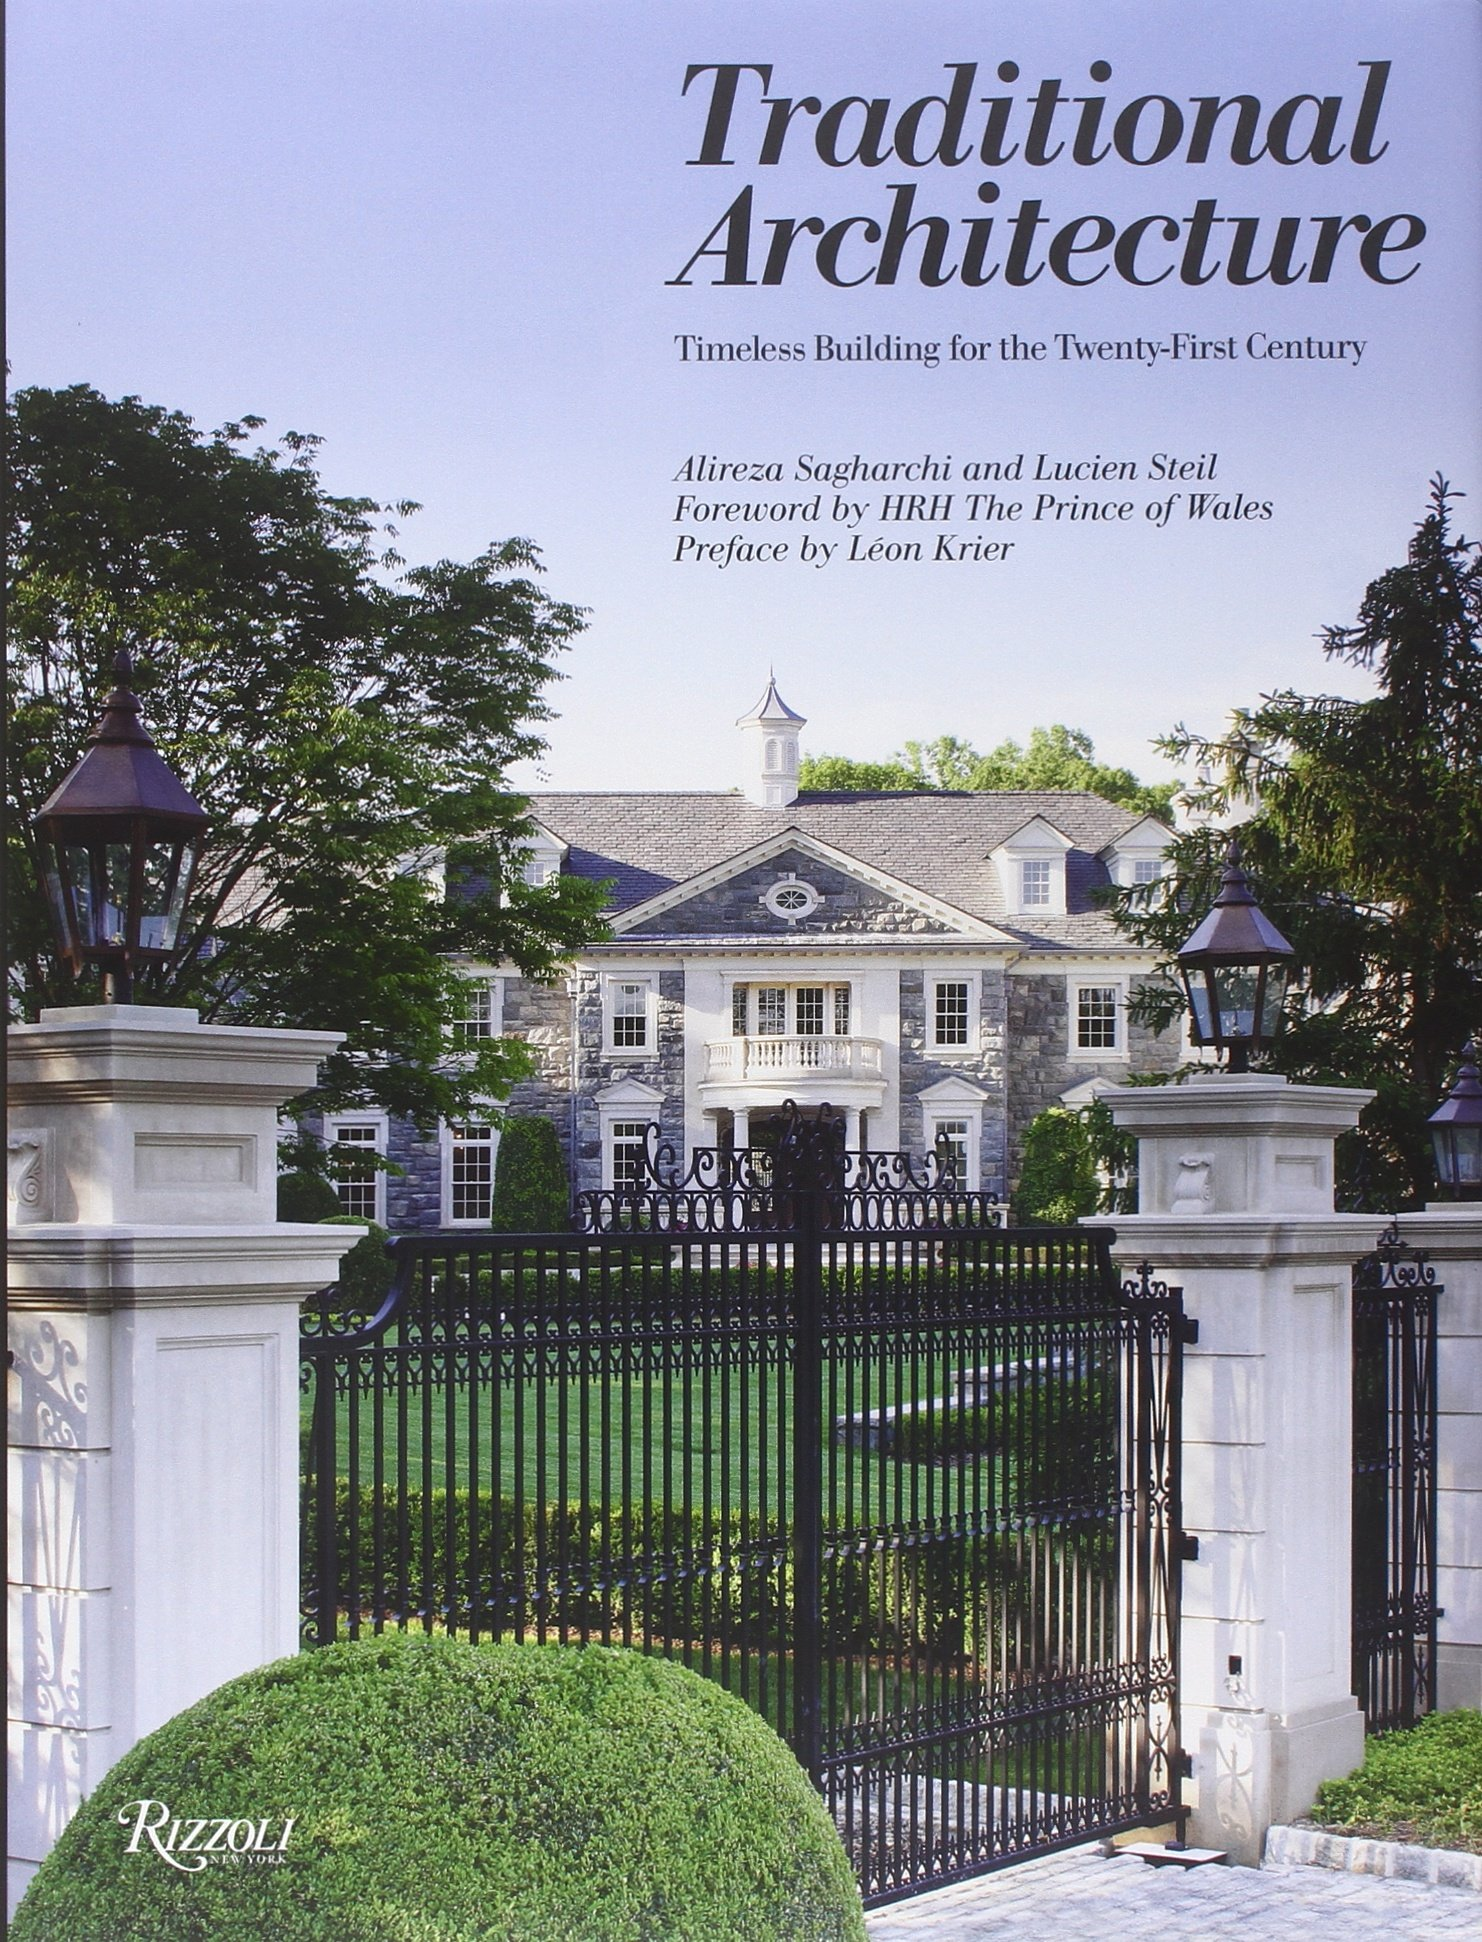 Traditional Architecture: Timeless Building for the Twenty-First Century by Rizzoli